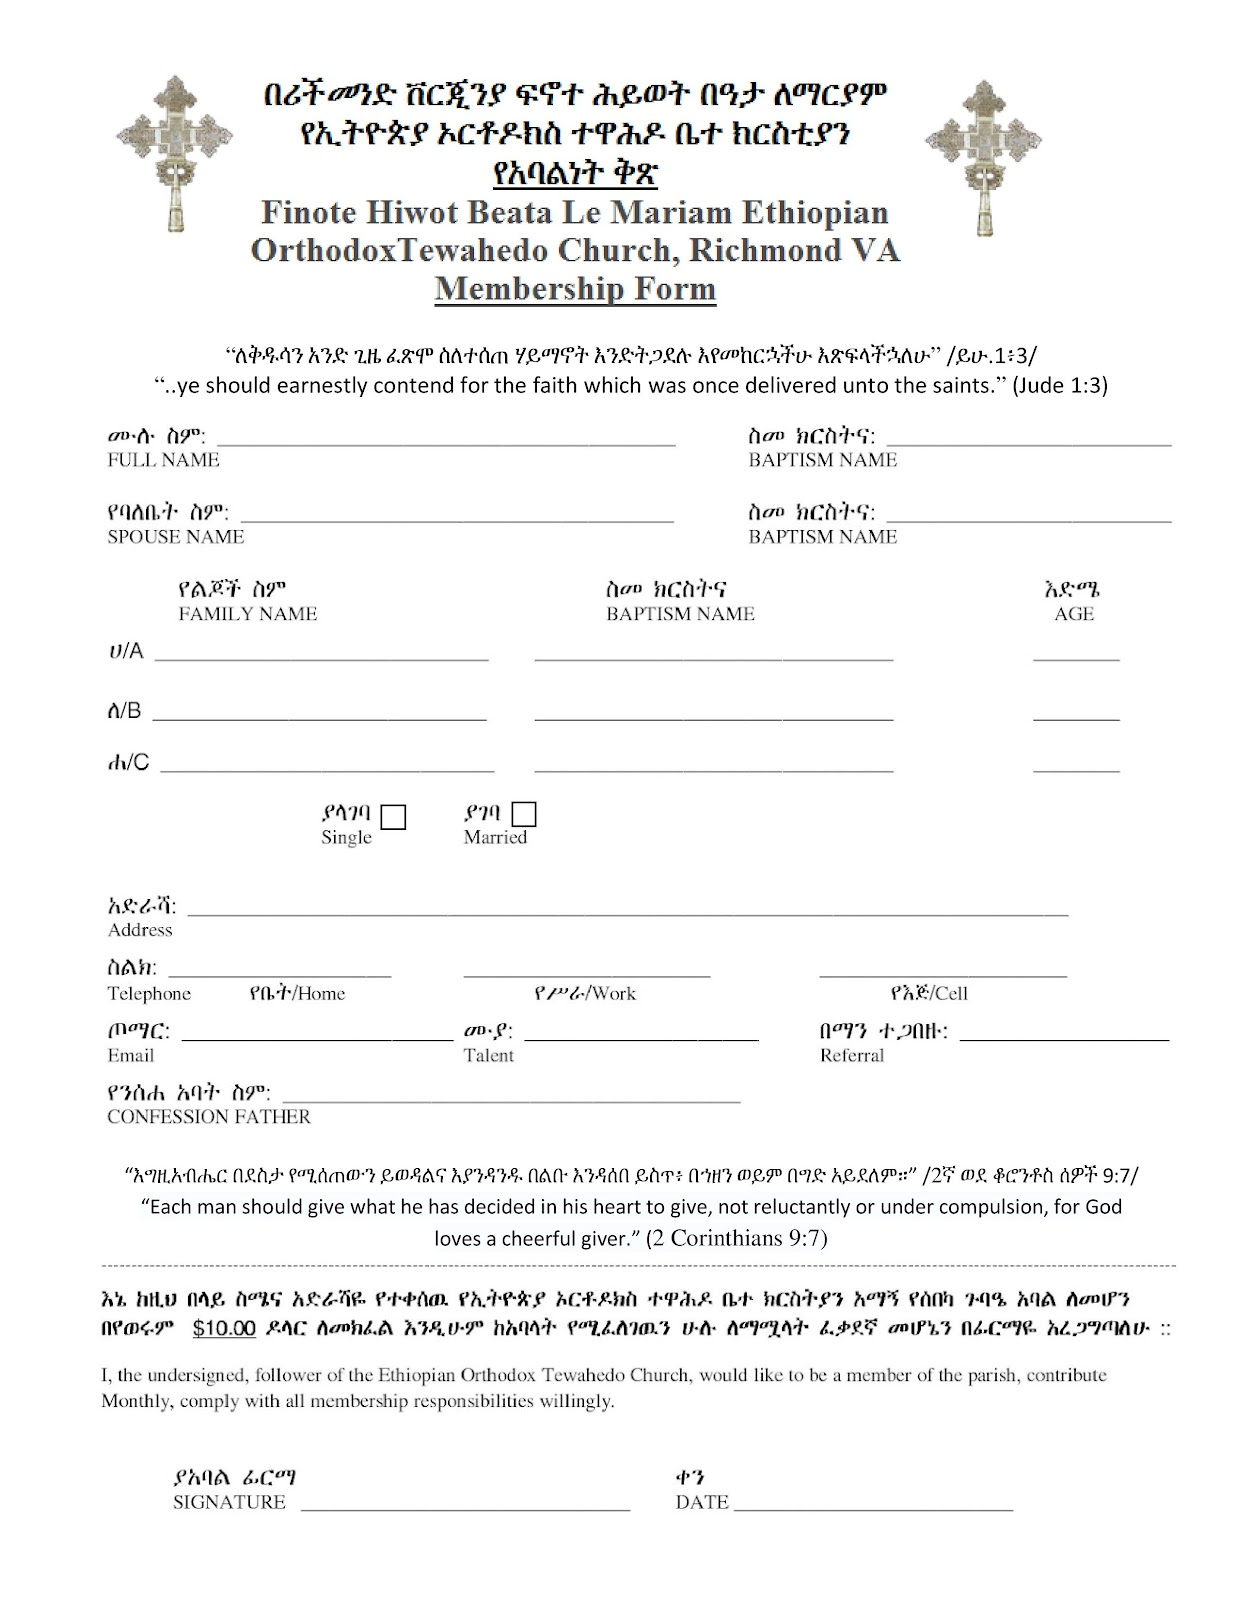 Free church membership forms template church membership form click for details form church membership thecheapjerseys Images